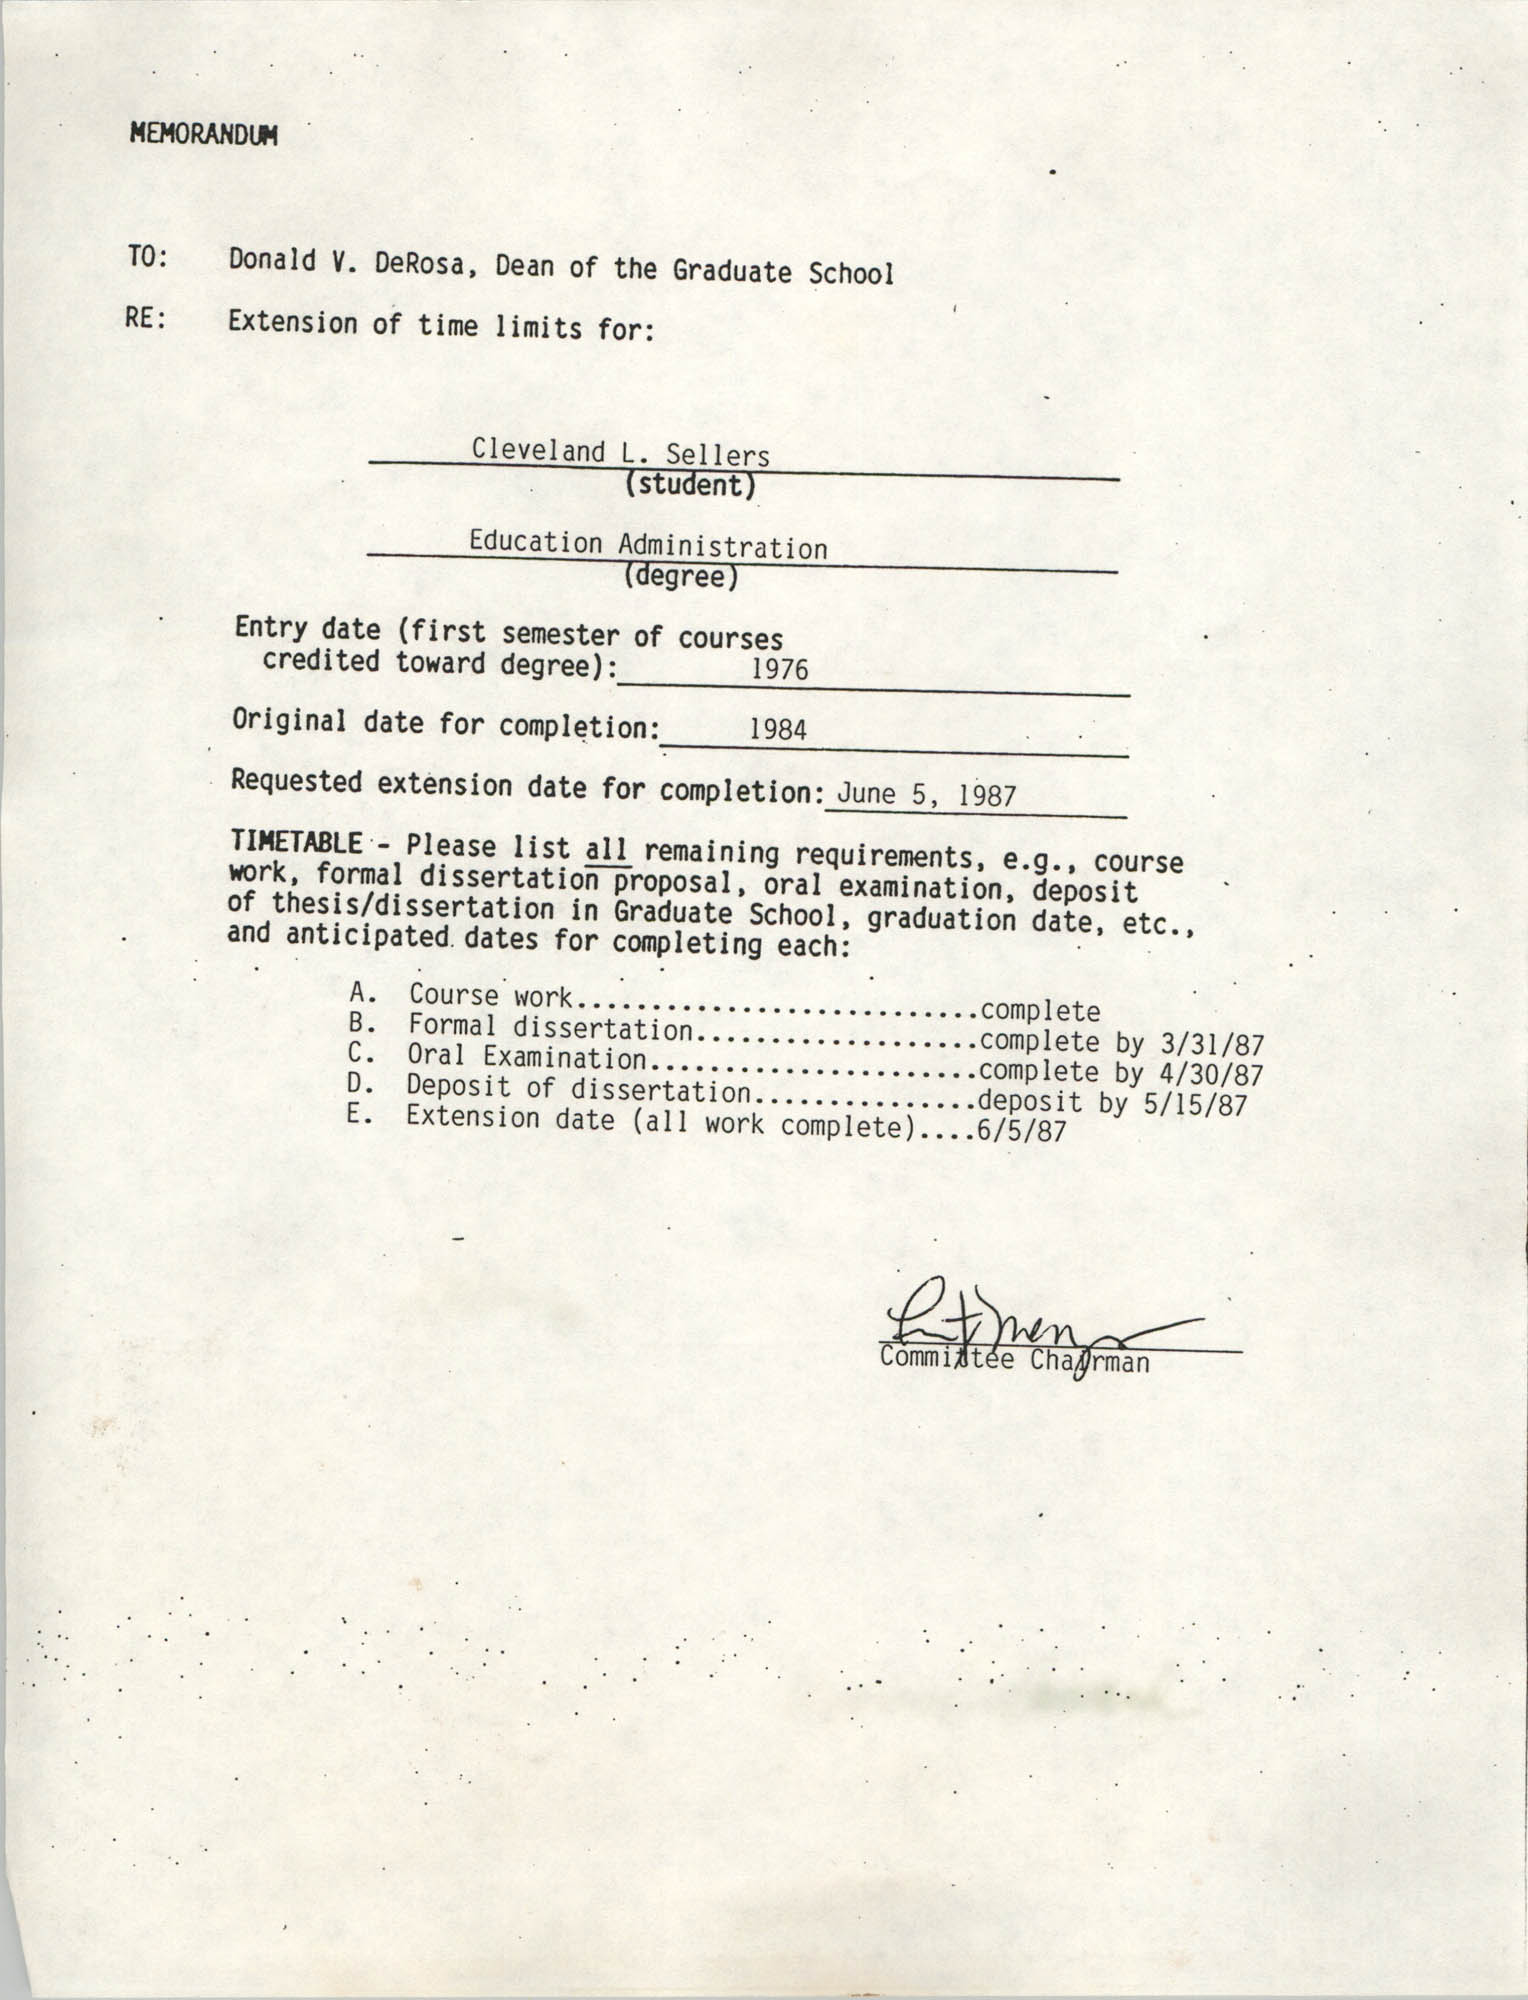 Memorandum to Donald V. DeRosa, June 5, 1987